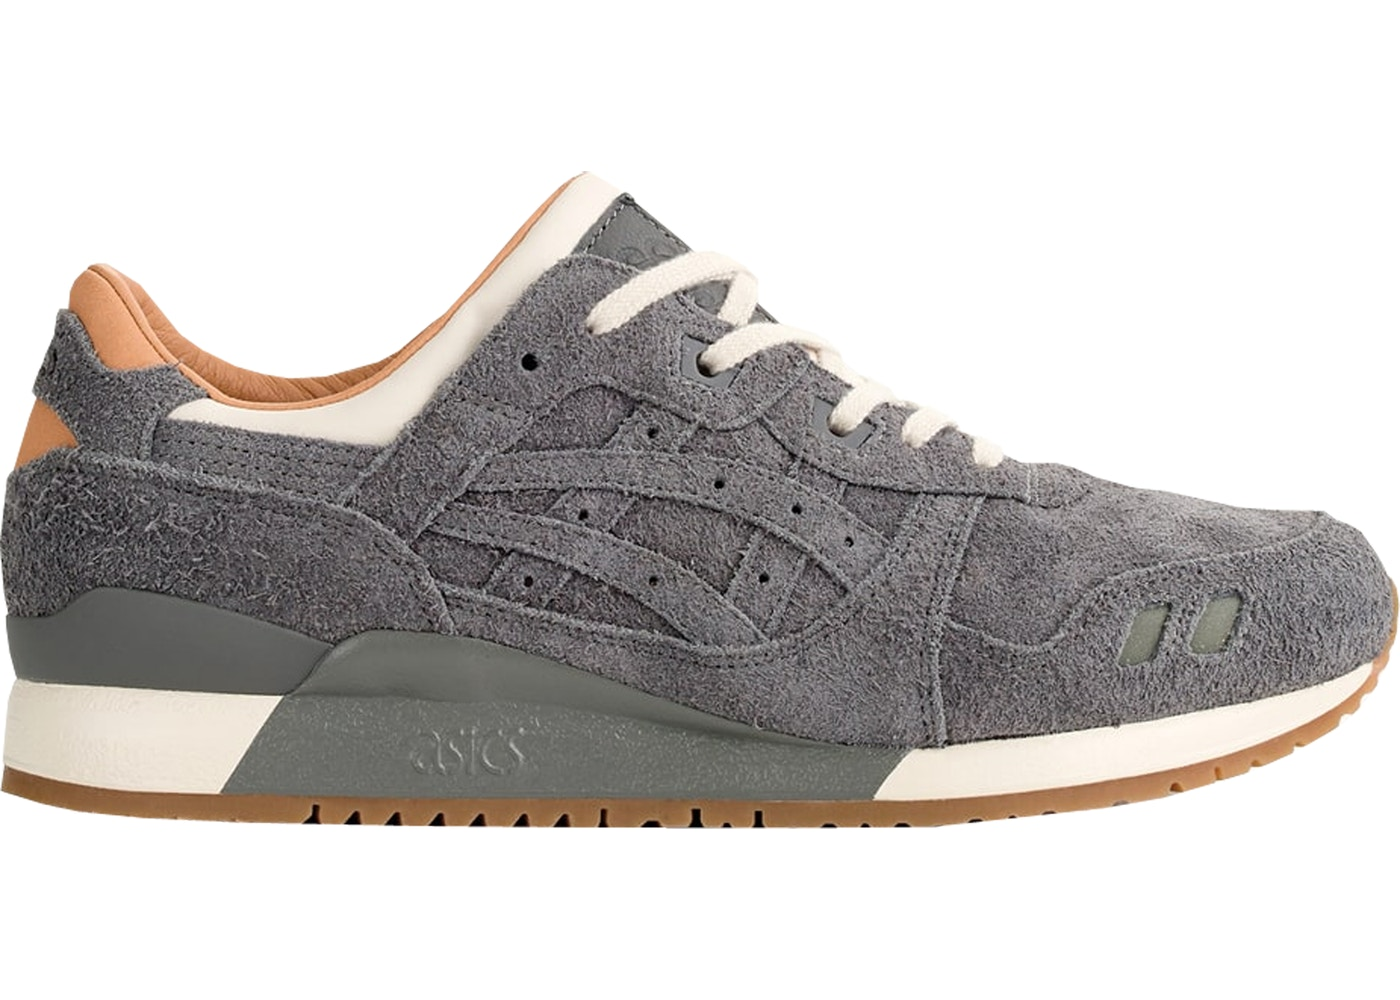 ASICS Gel Lyte III Packer Shoes x J. Crew Charcoal Suede